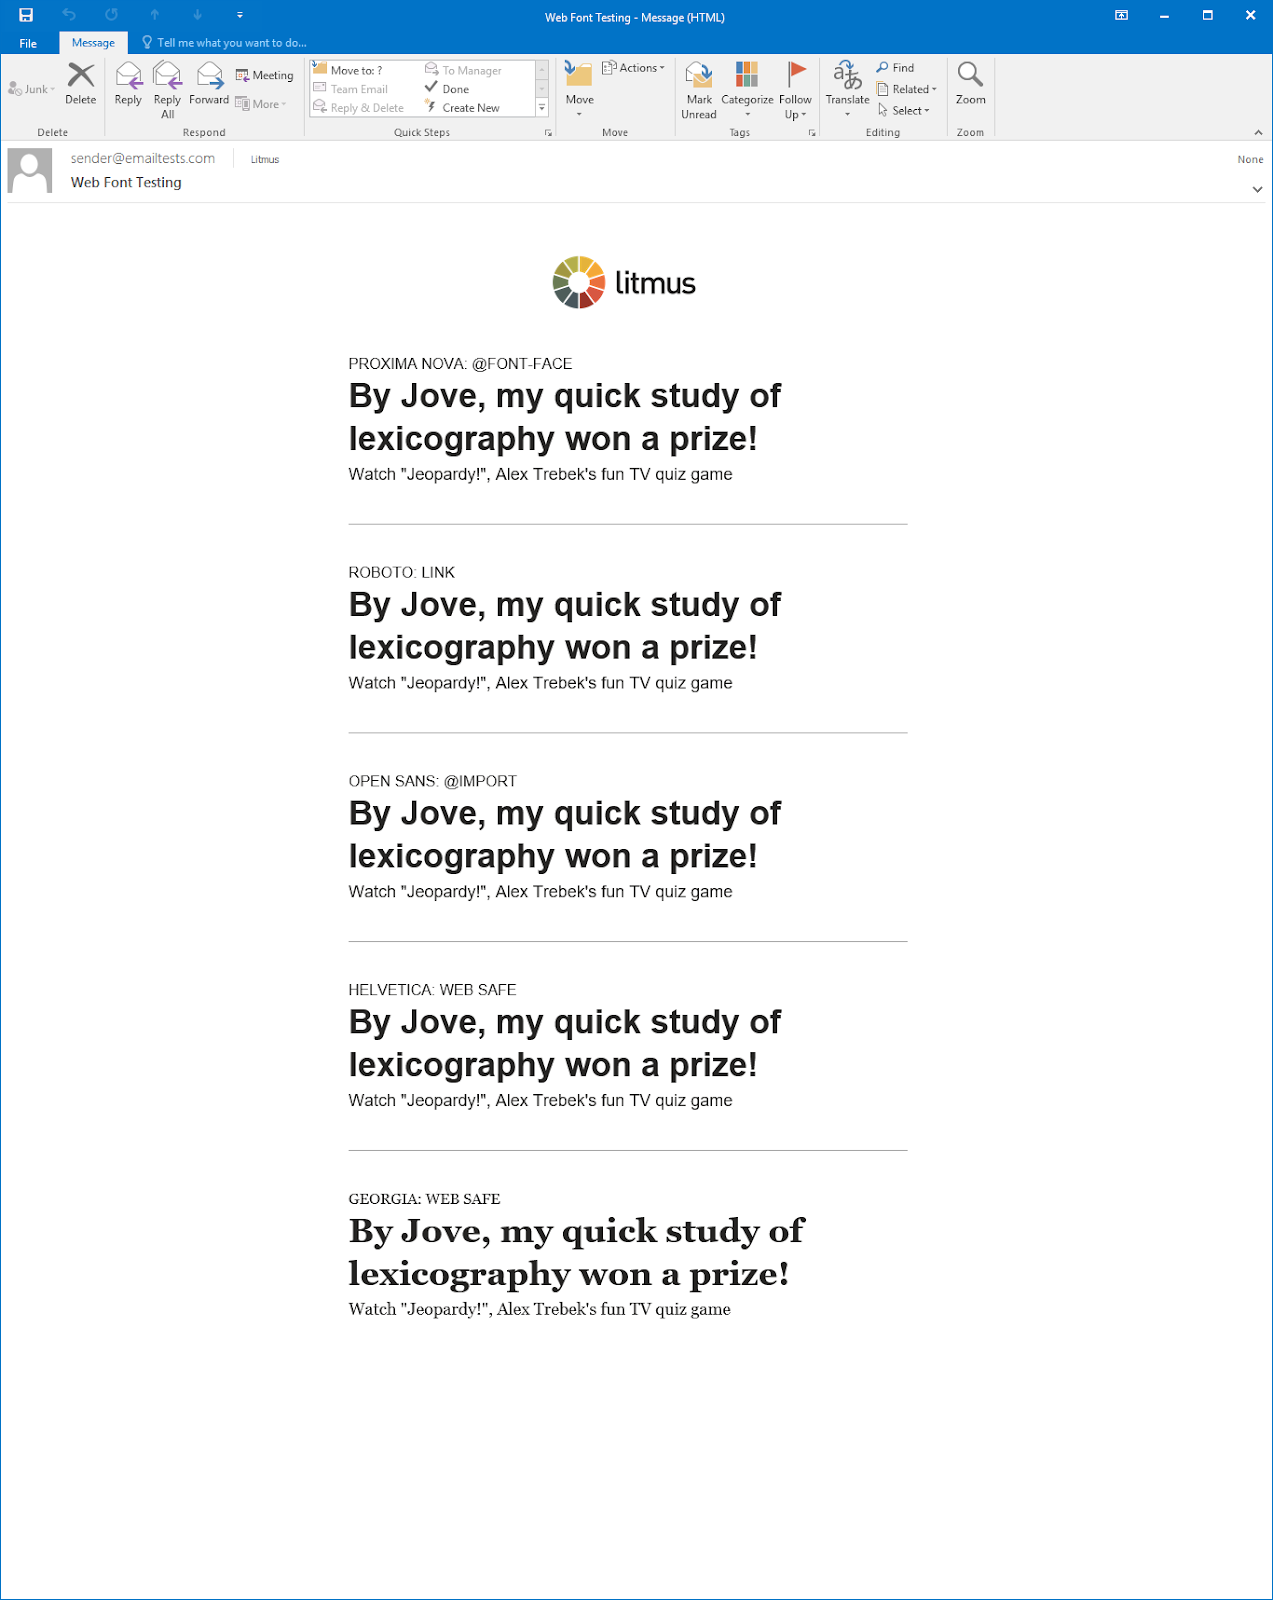 testing web fonts in email for older versions of outlook with mso conditionals